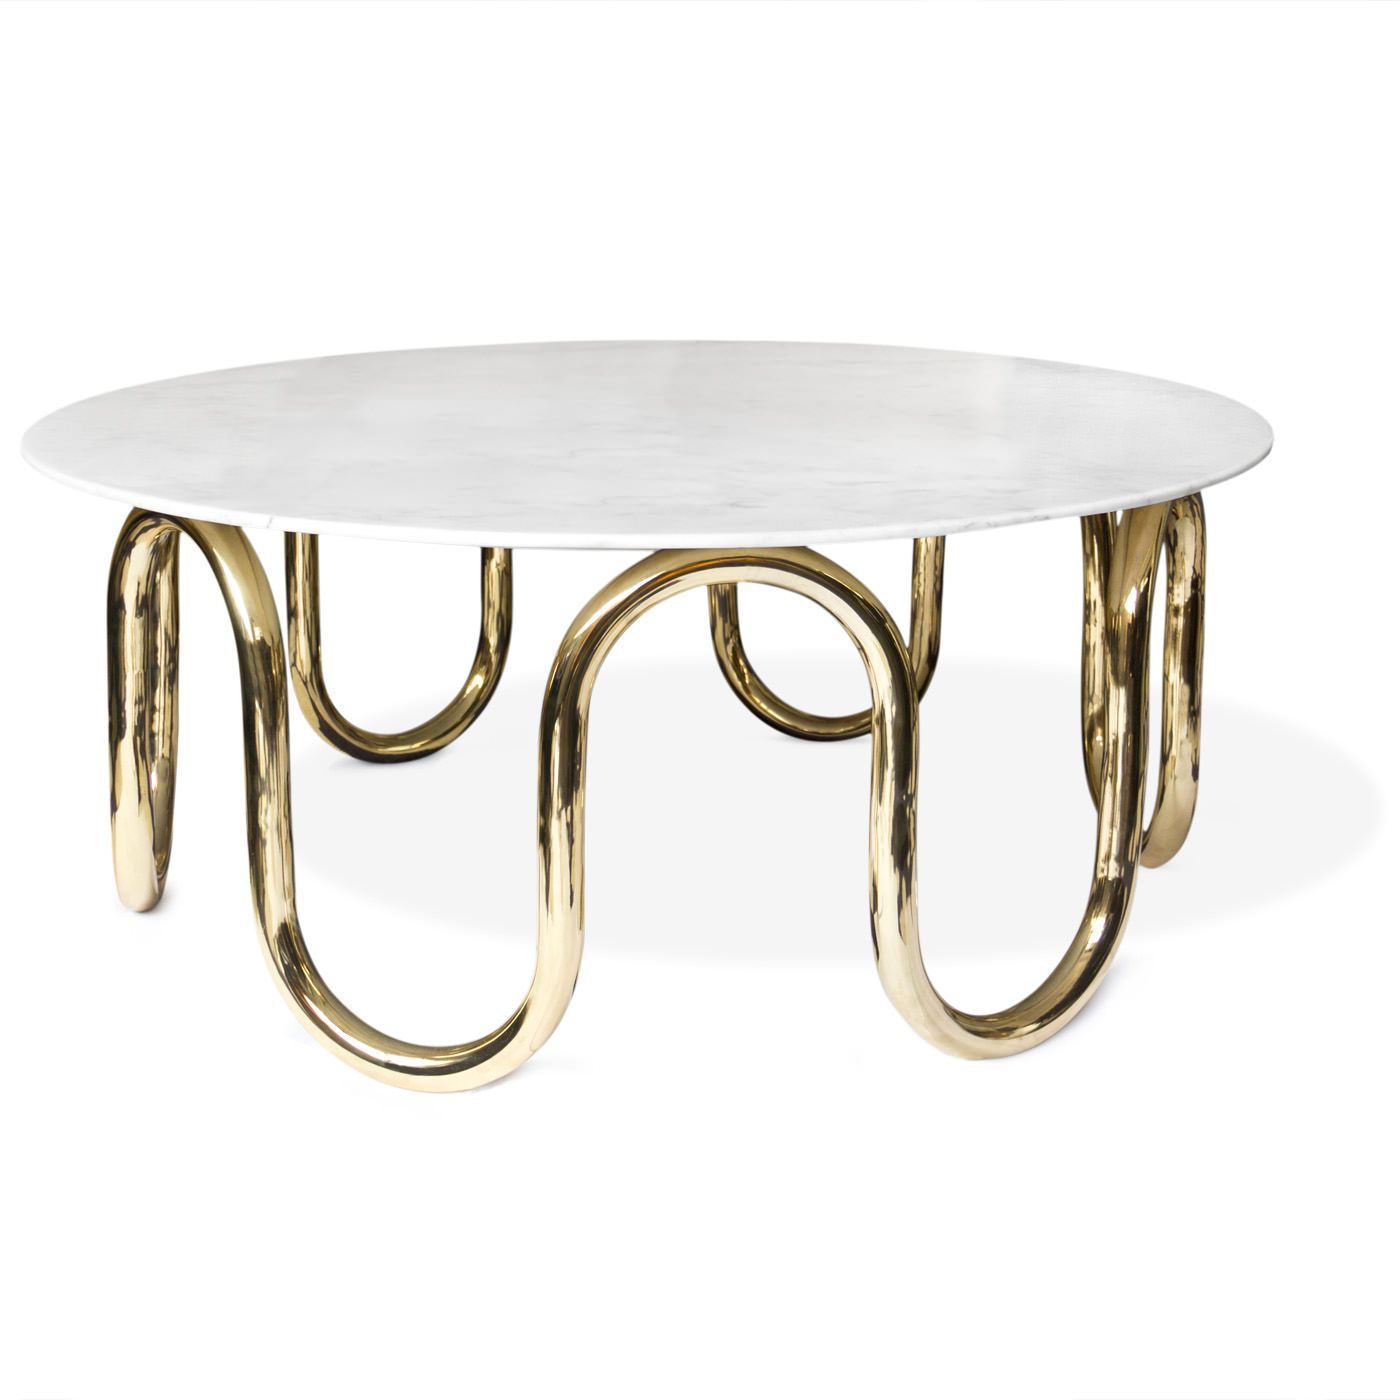 "Scalinatella Cocktail Table 38"" Diameter 15 75"" H Carrara marble"